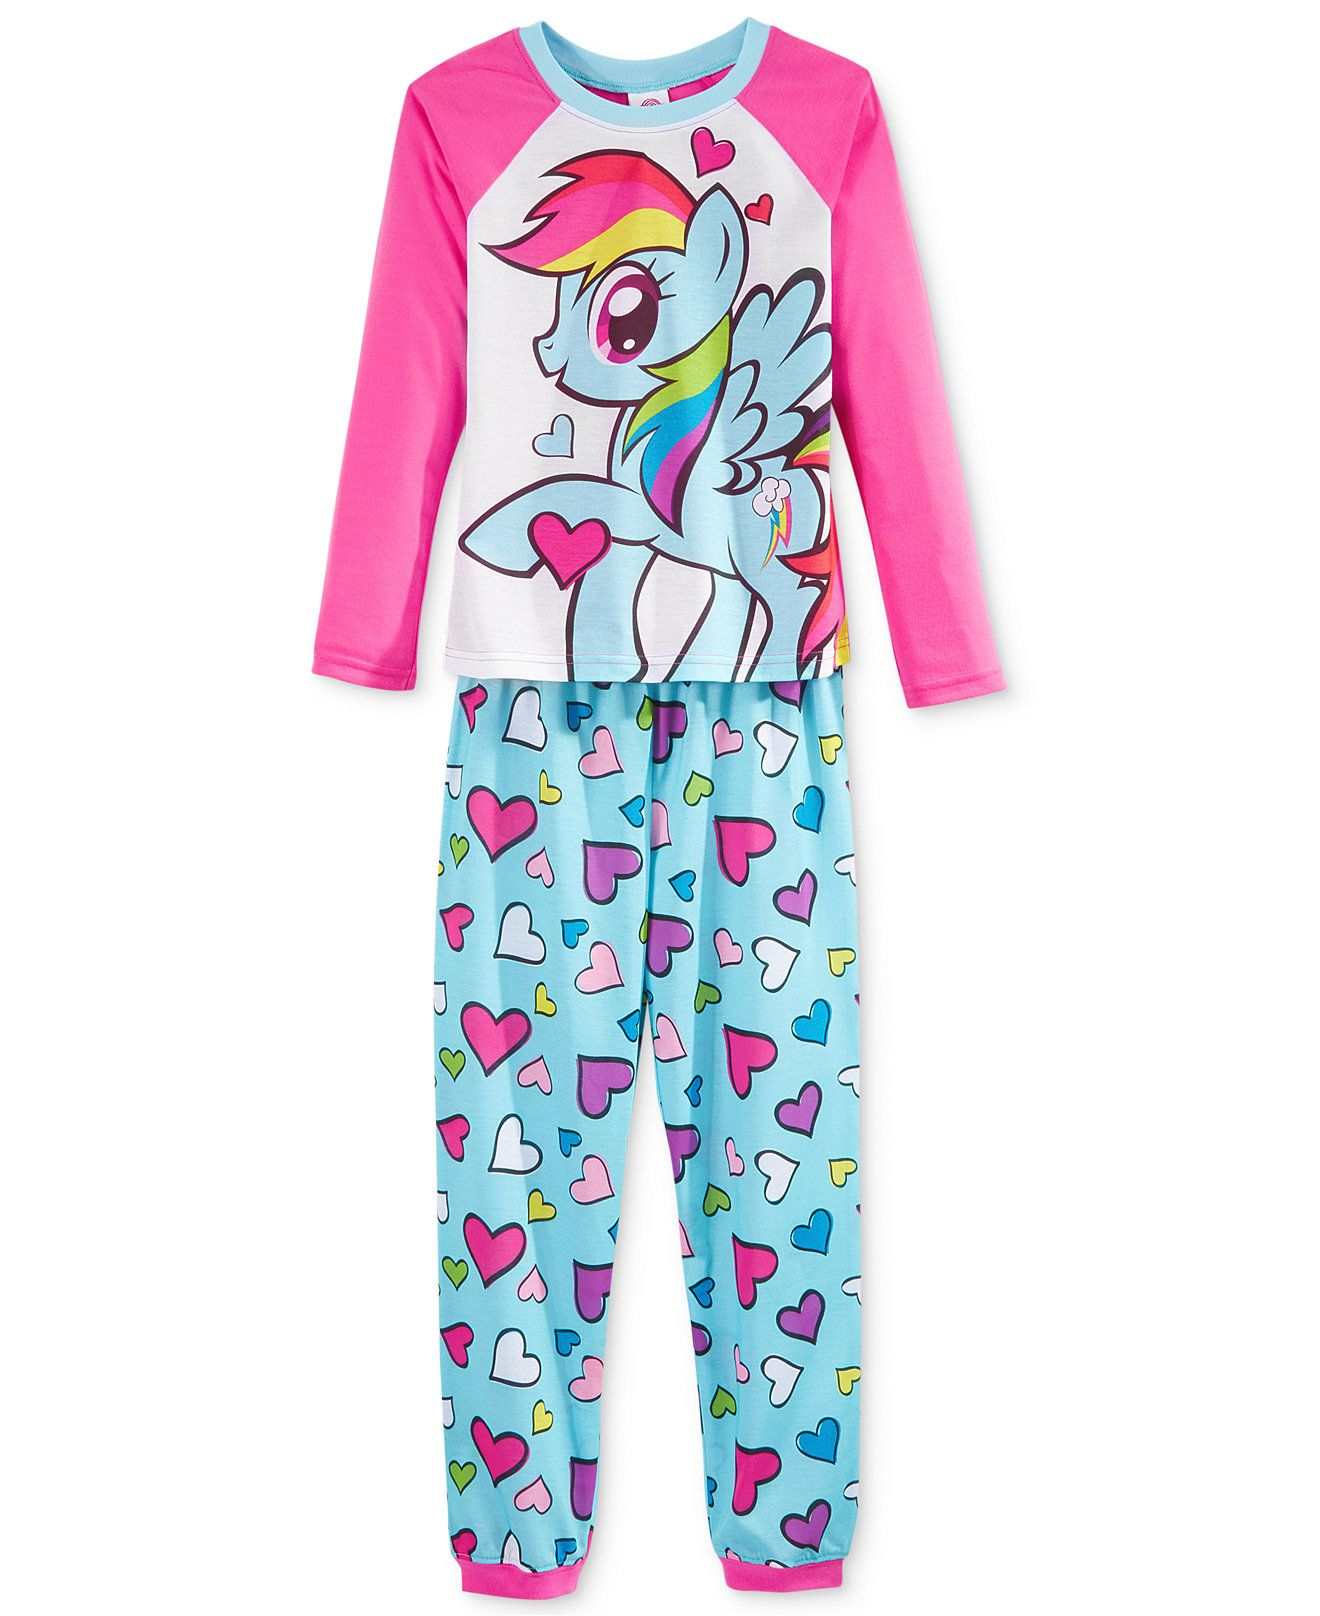 33cdbbbfa0 My Little Pony Girls  or Little Girls  2-Piece Pajama Set - Kids   Baby -  Macy s - F - 2015